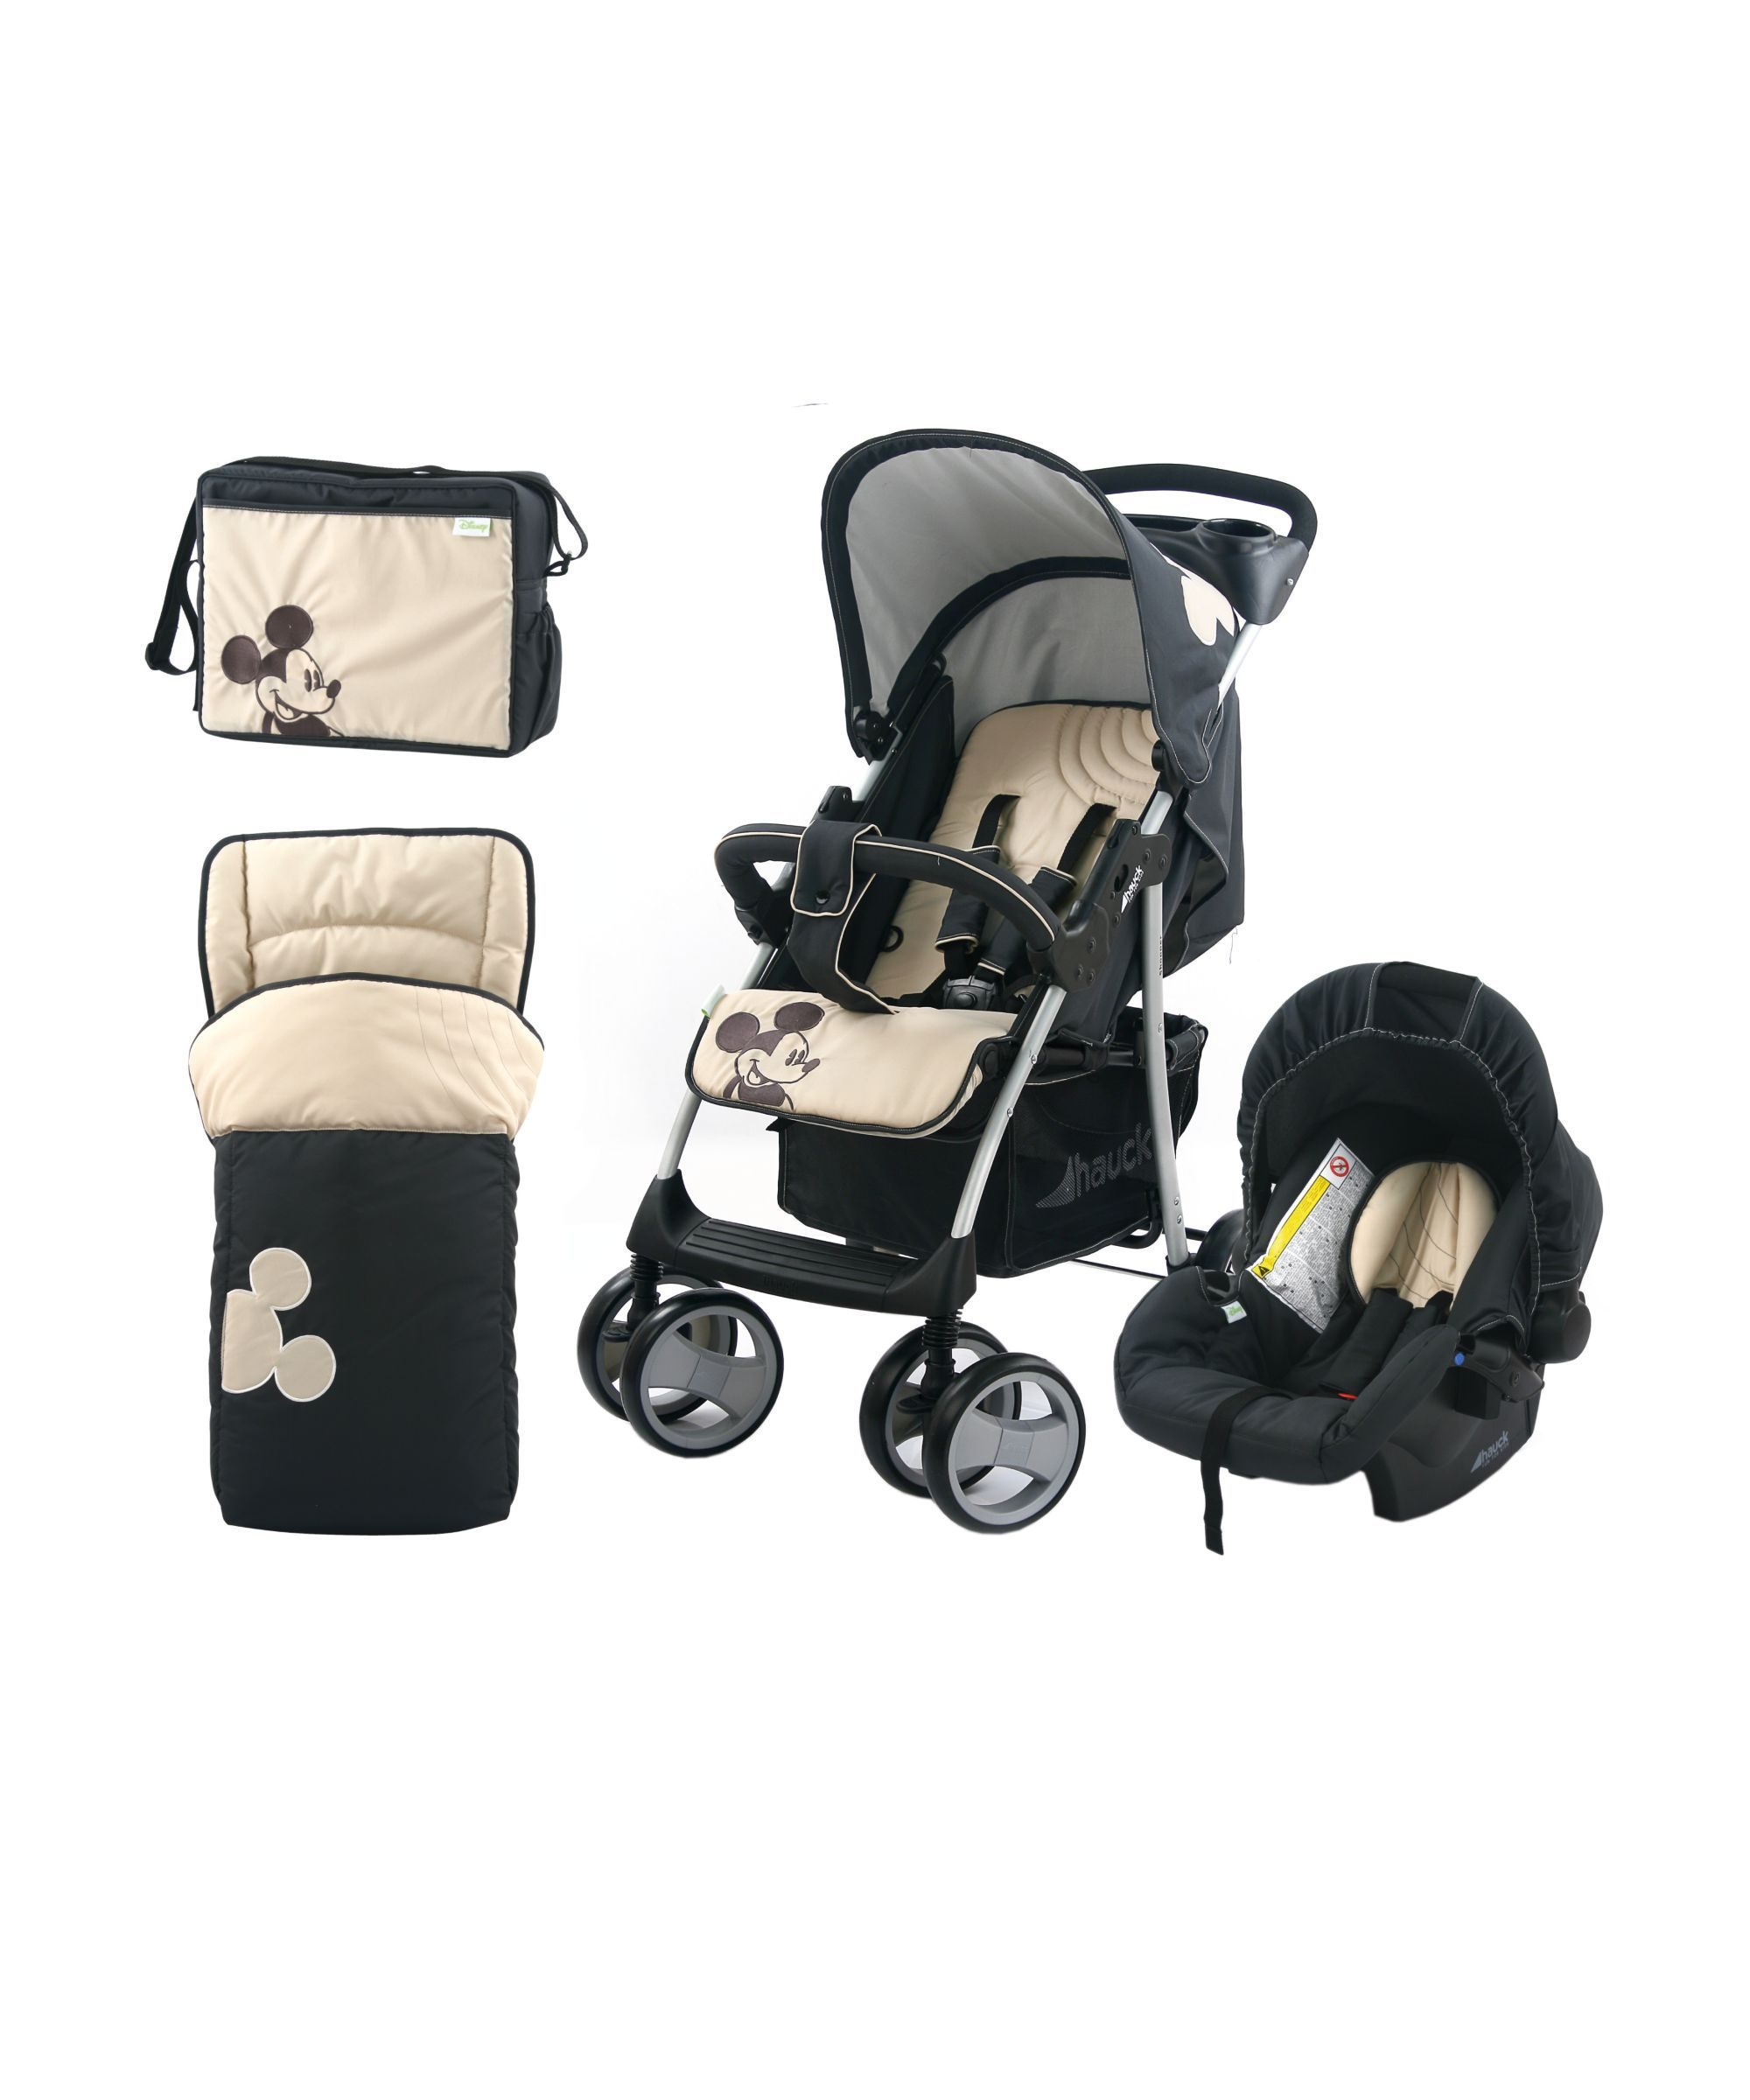 Hauck Disney Baby Shopper Shop \'n Drive Travel System - Classic ...